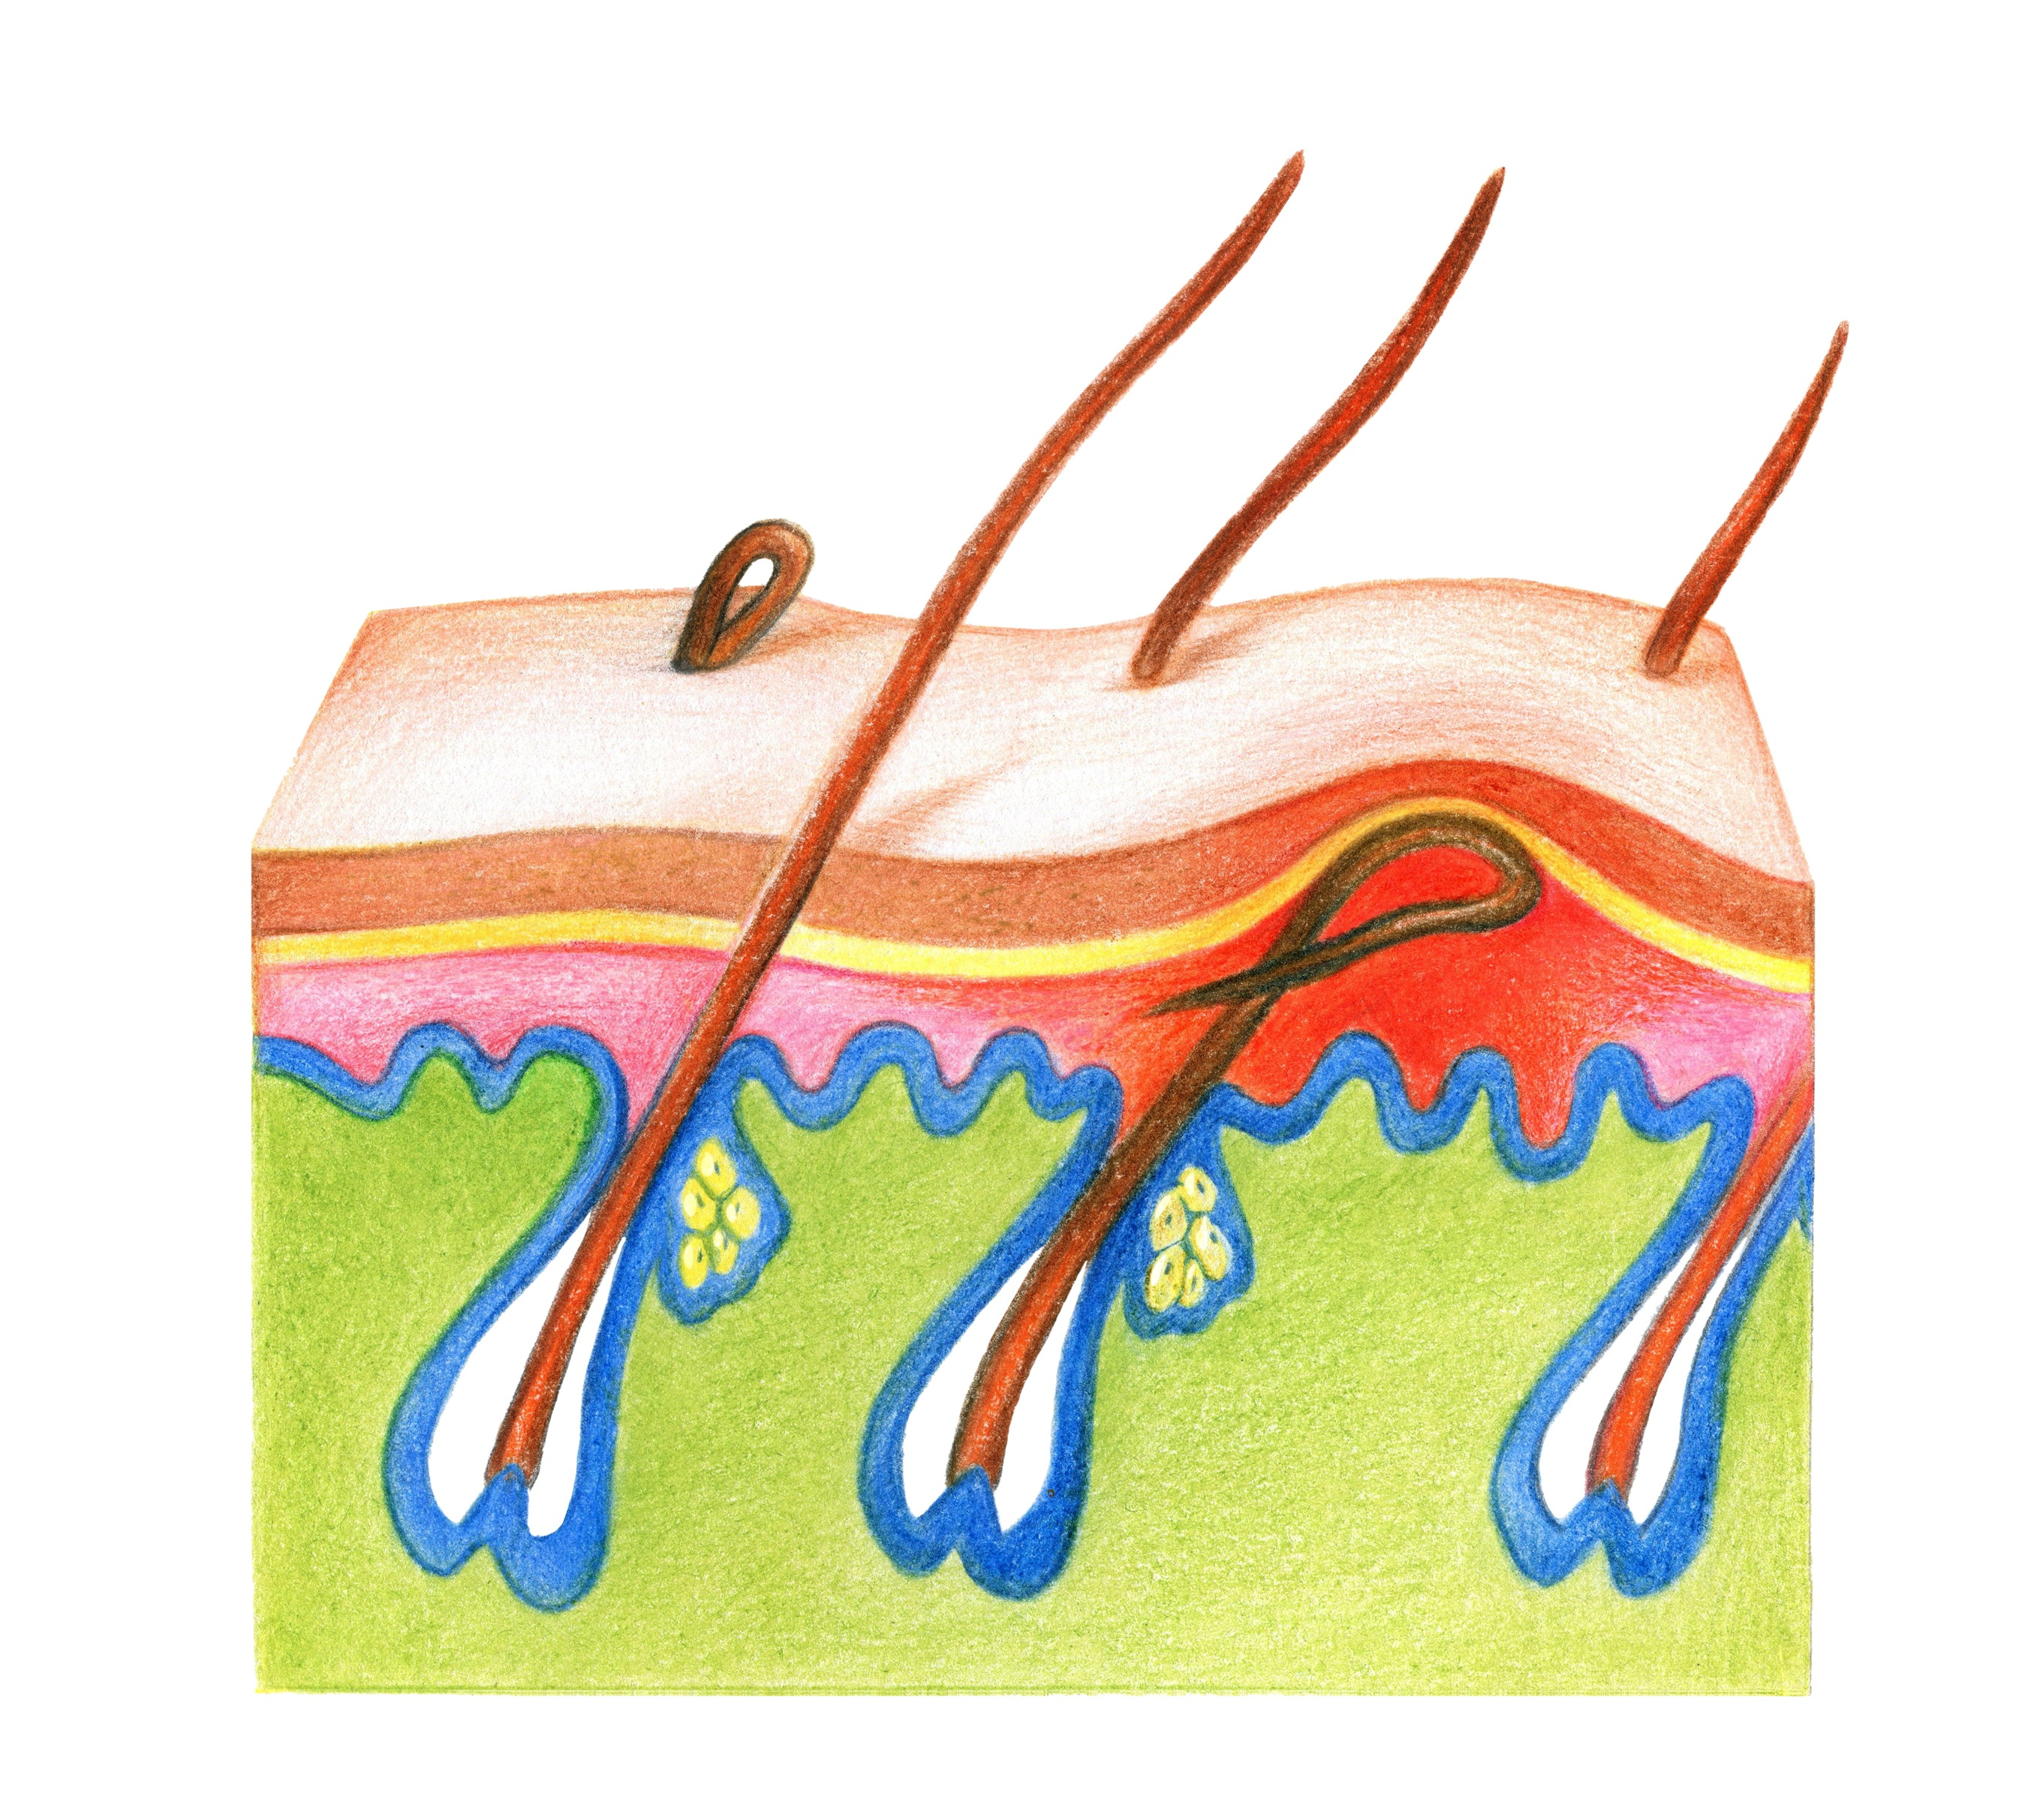 Illustration of an ingrown hair